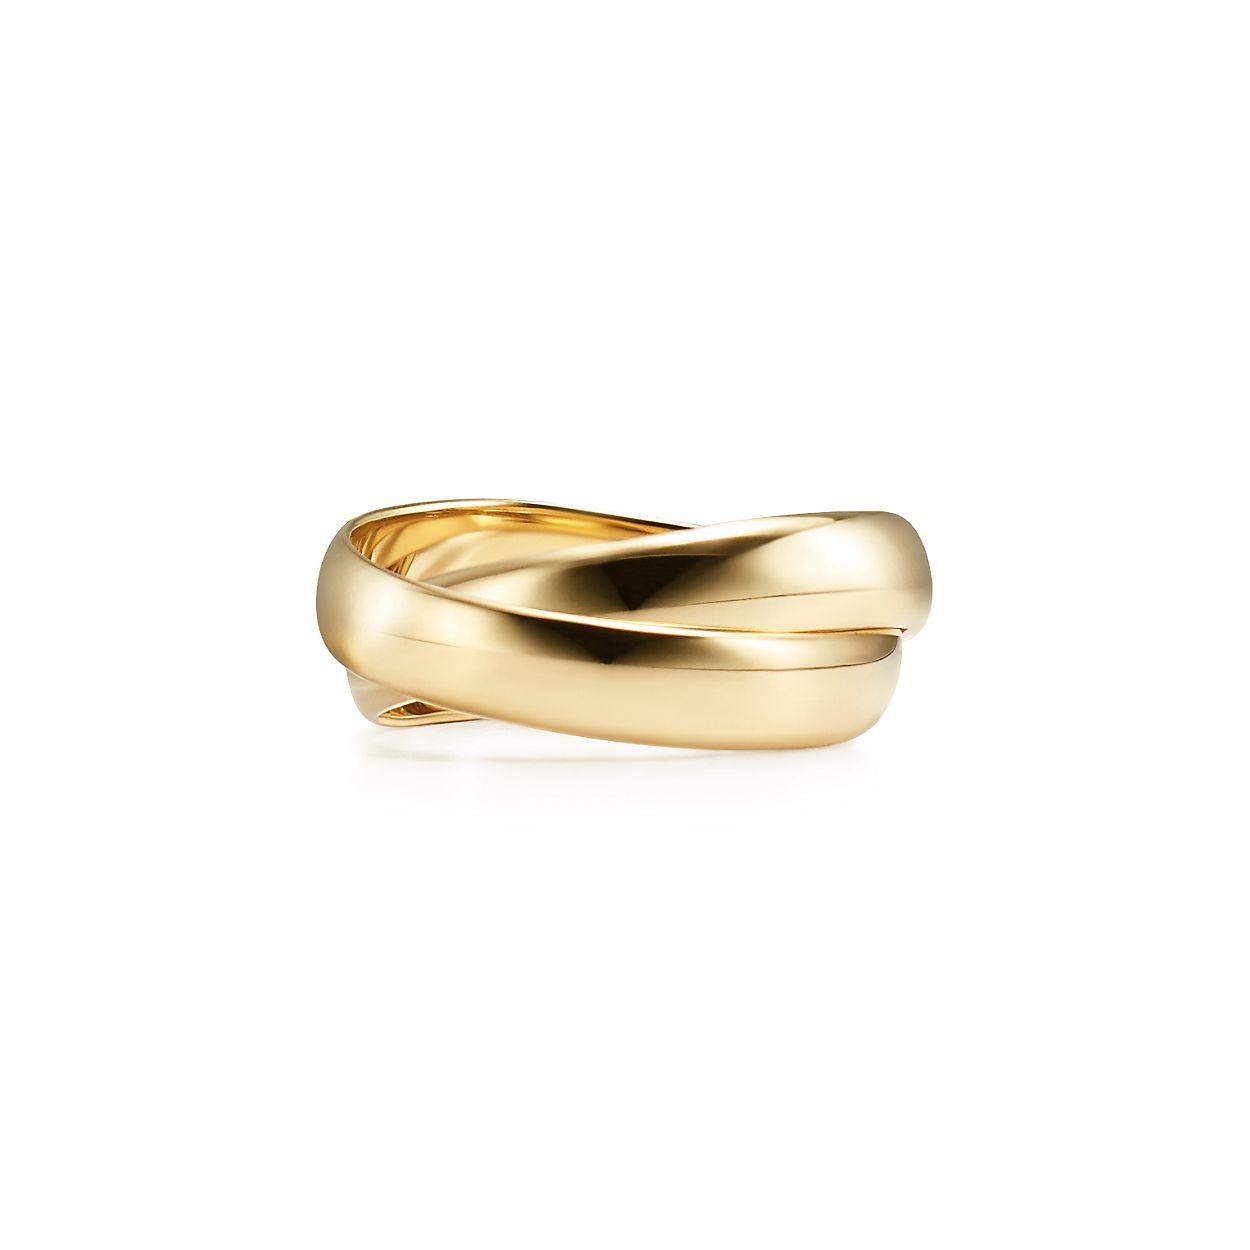 Palomas Melody two-band ring in 18k gold - Size 8 Tiffany & Co. JItocjte2